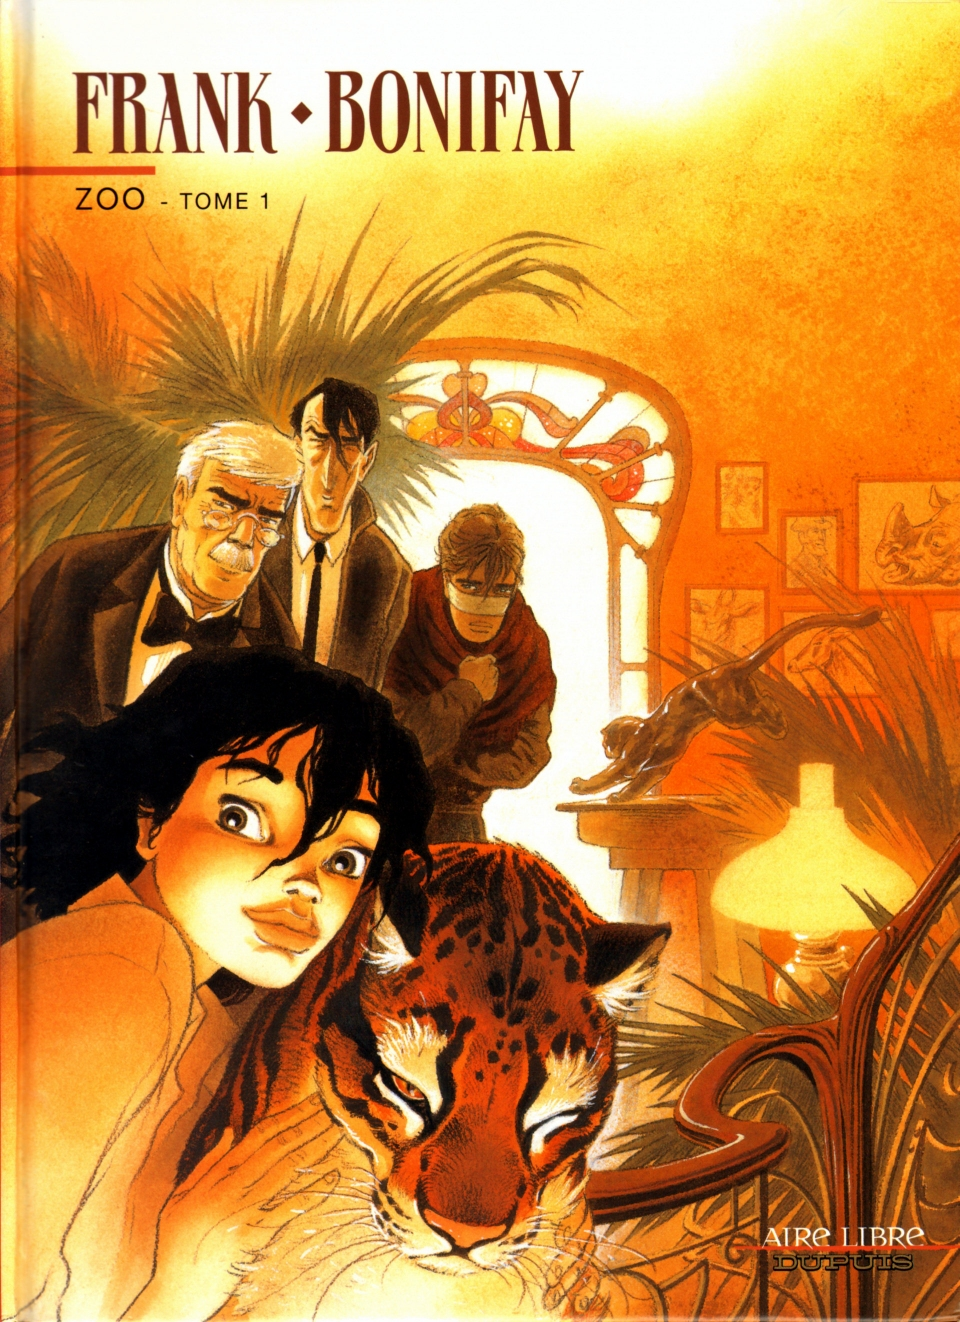 ZOO - Tome 1